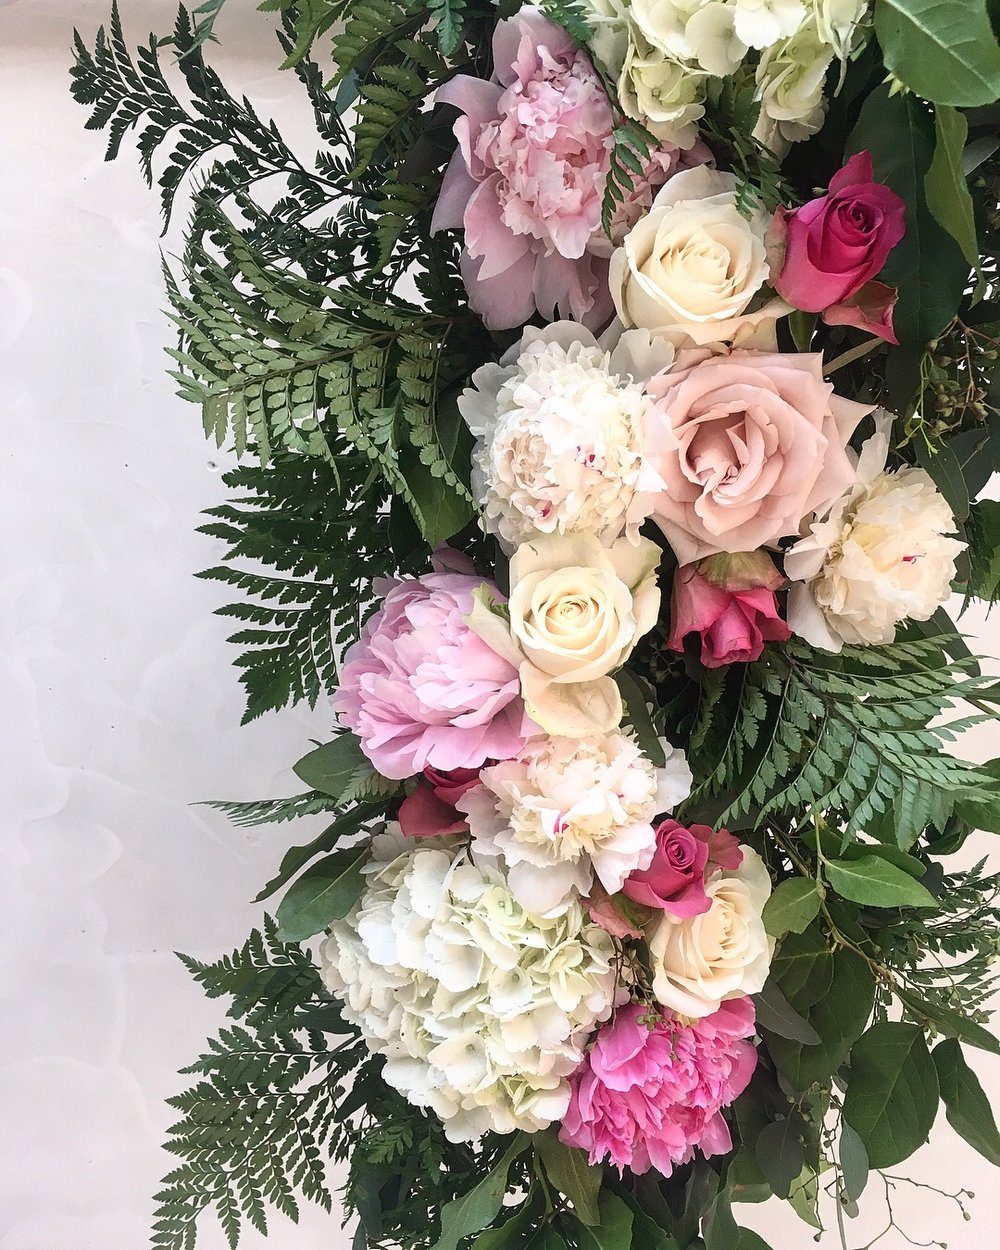 wedding + event floral - I make floral wreaths and arrangements, big and small!From holiday evergreens for your front door, to floral installation backdrops, I'd love to assist in all things floral for your next event.